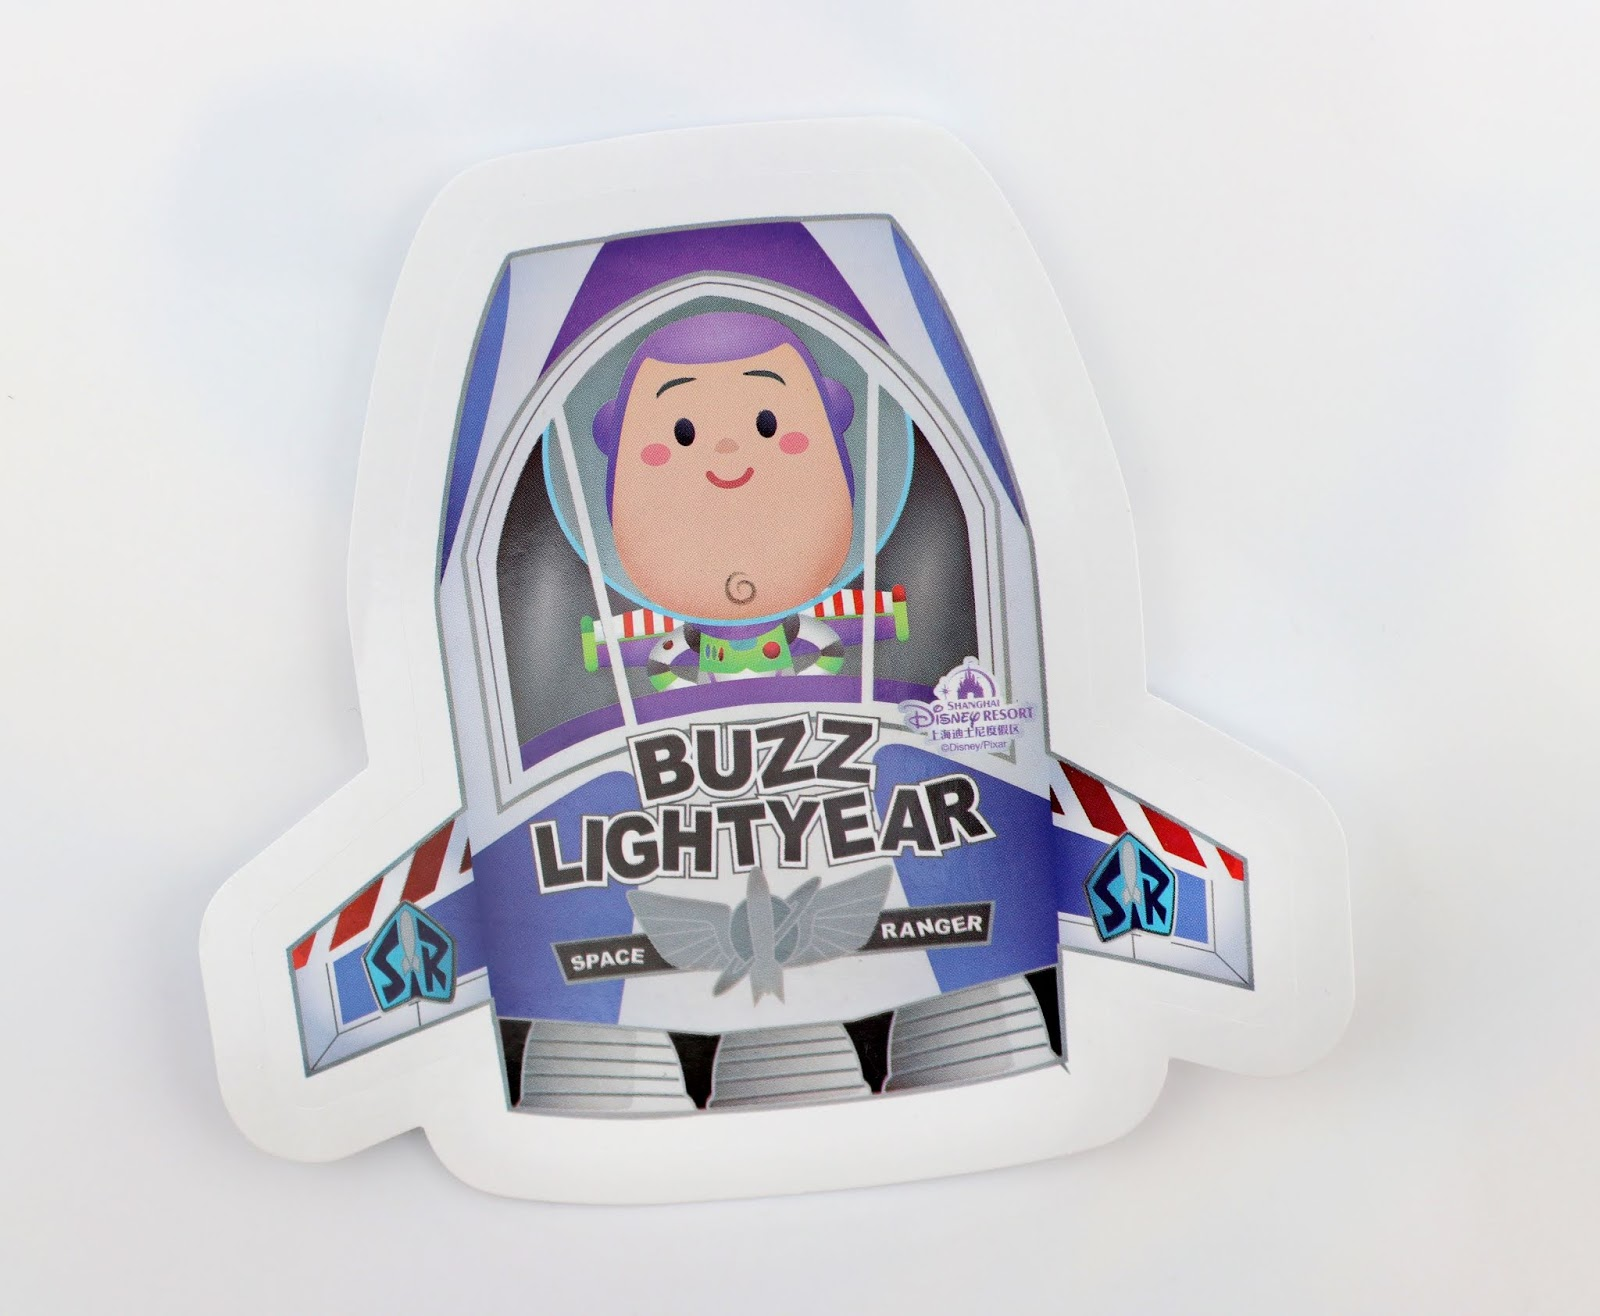 Shanghai Disney Exclusive Buzz Lightyear Sticker by Jerrod Maruyama